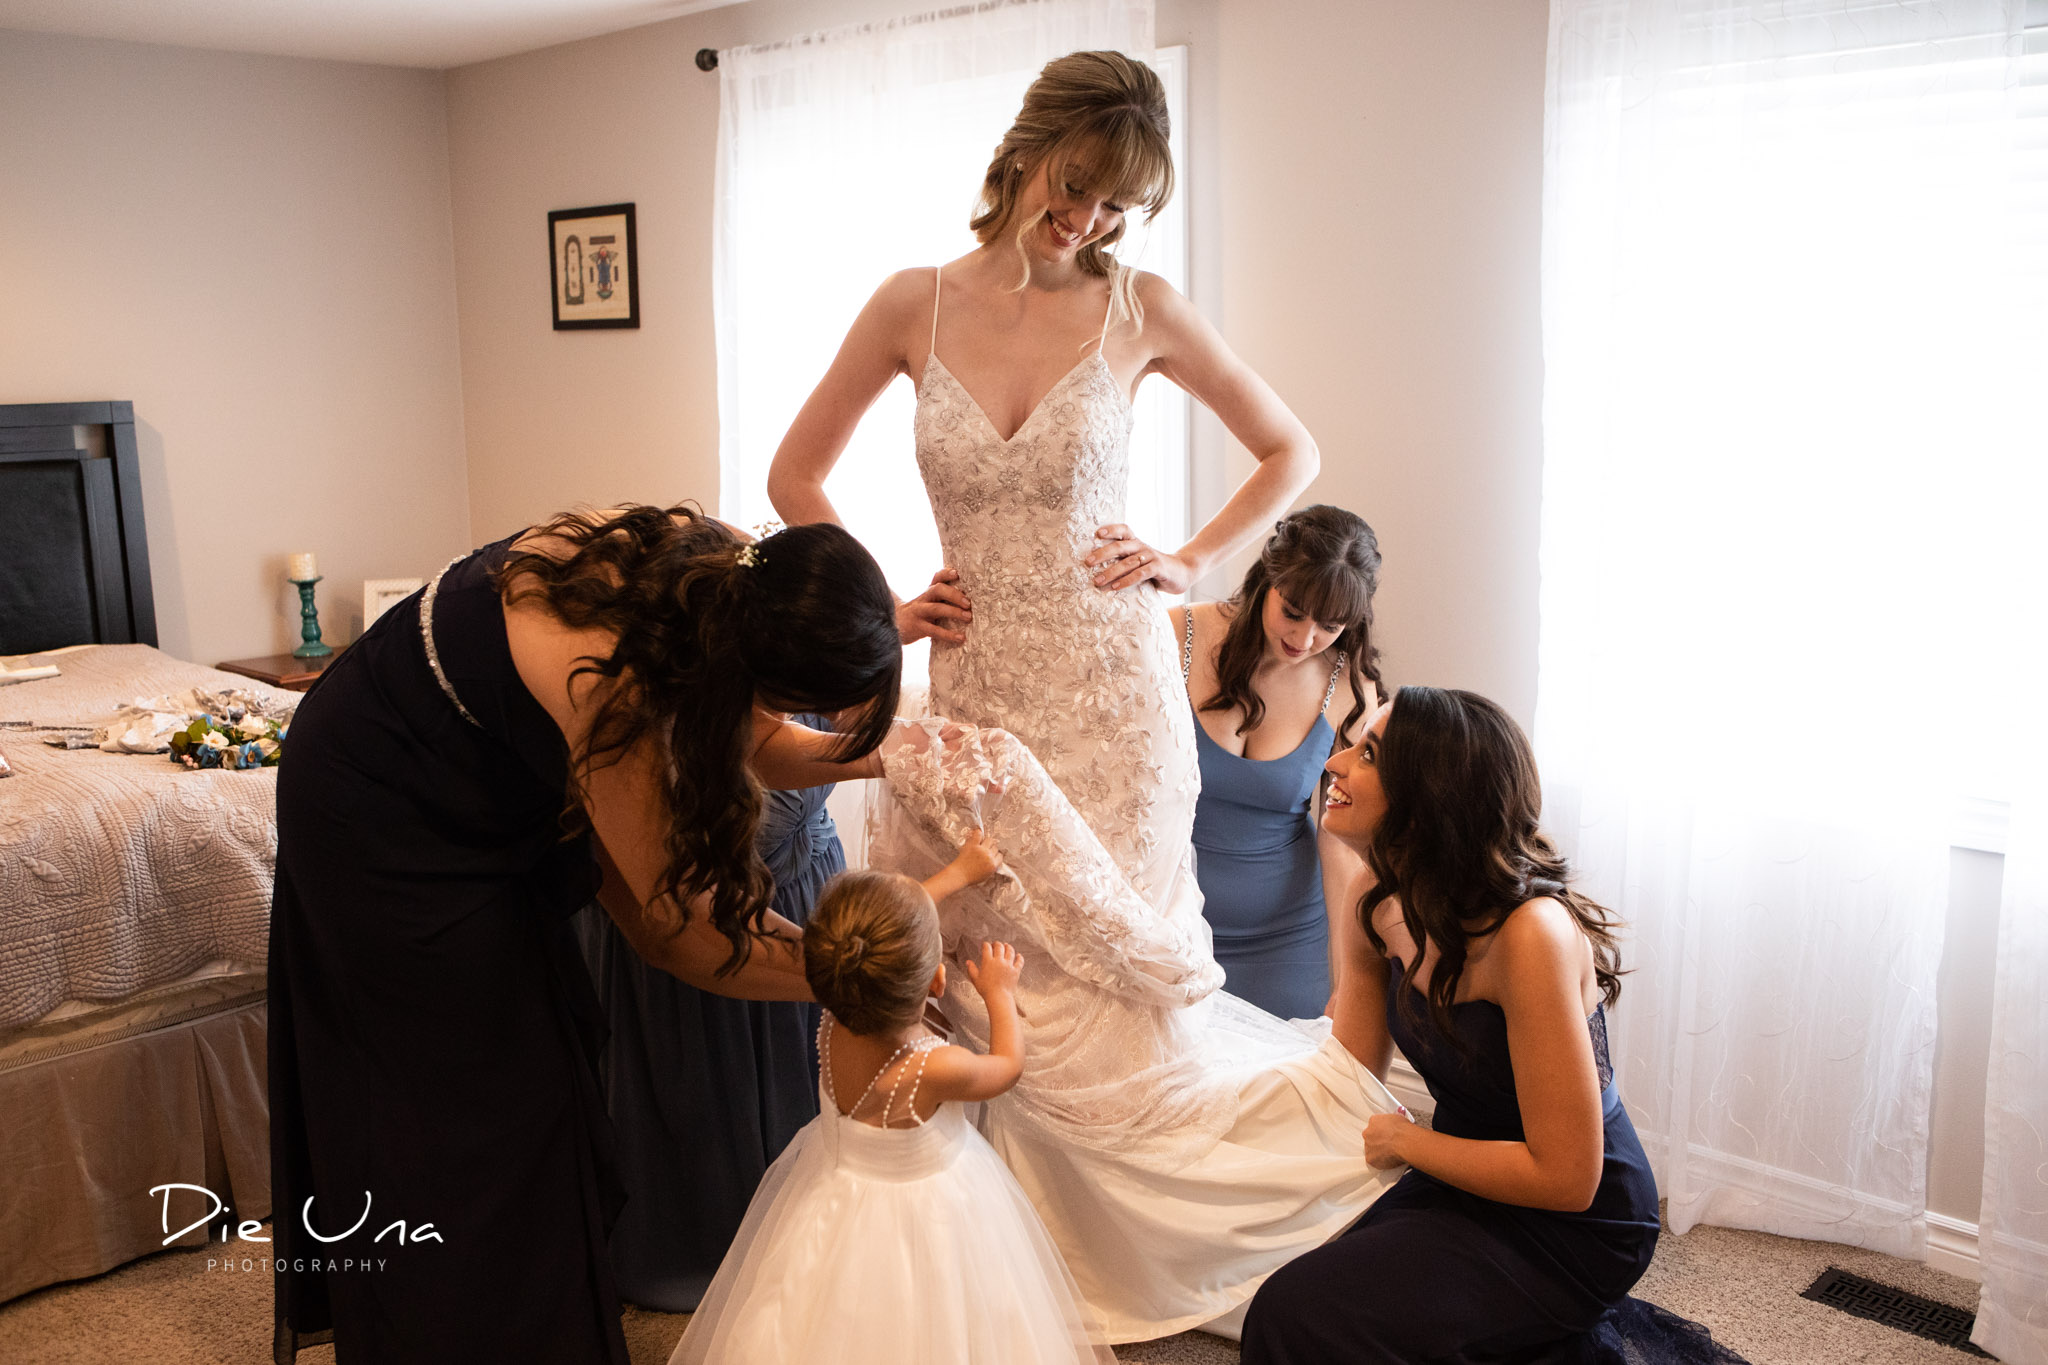 all the bridesmaids and flower girl helping the bride get her wedding dress on.jpg